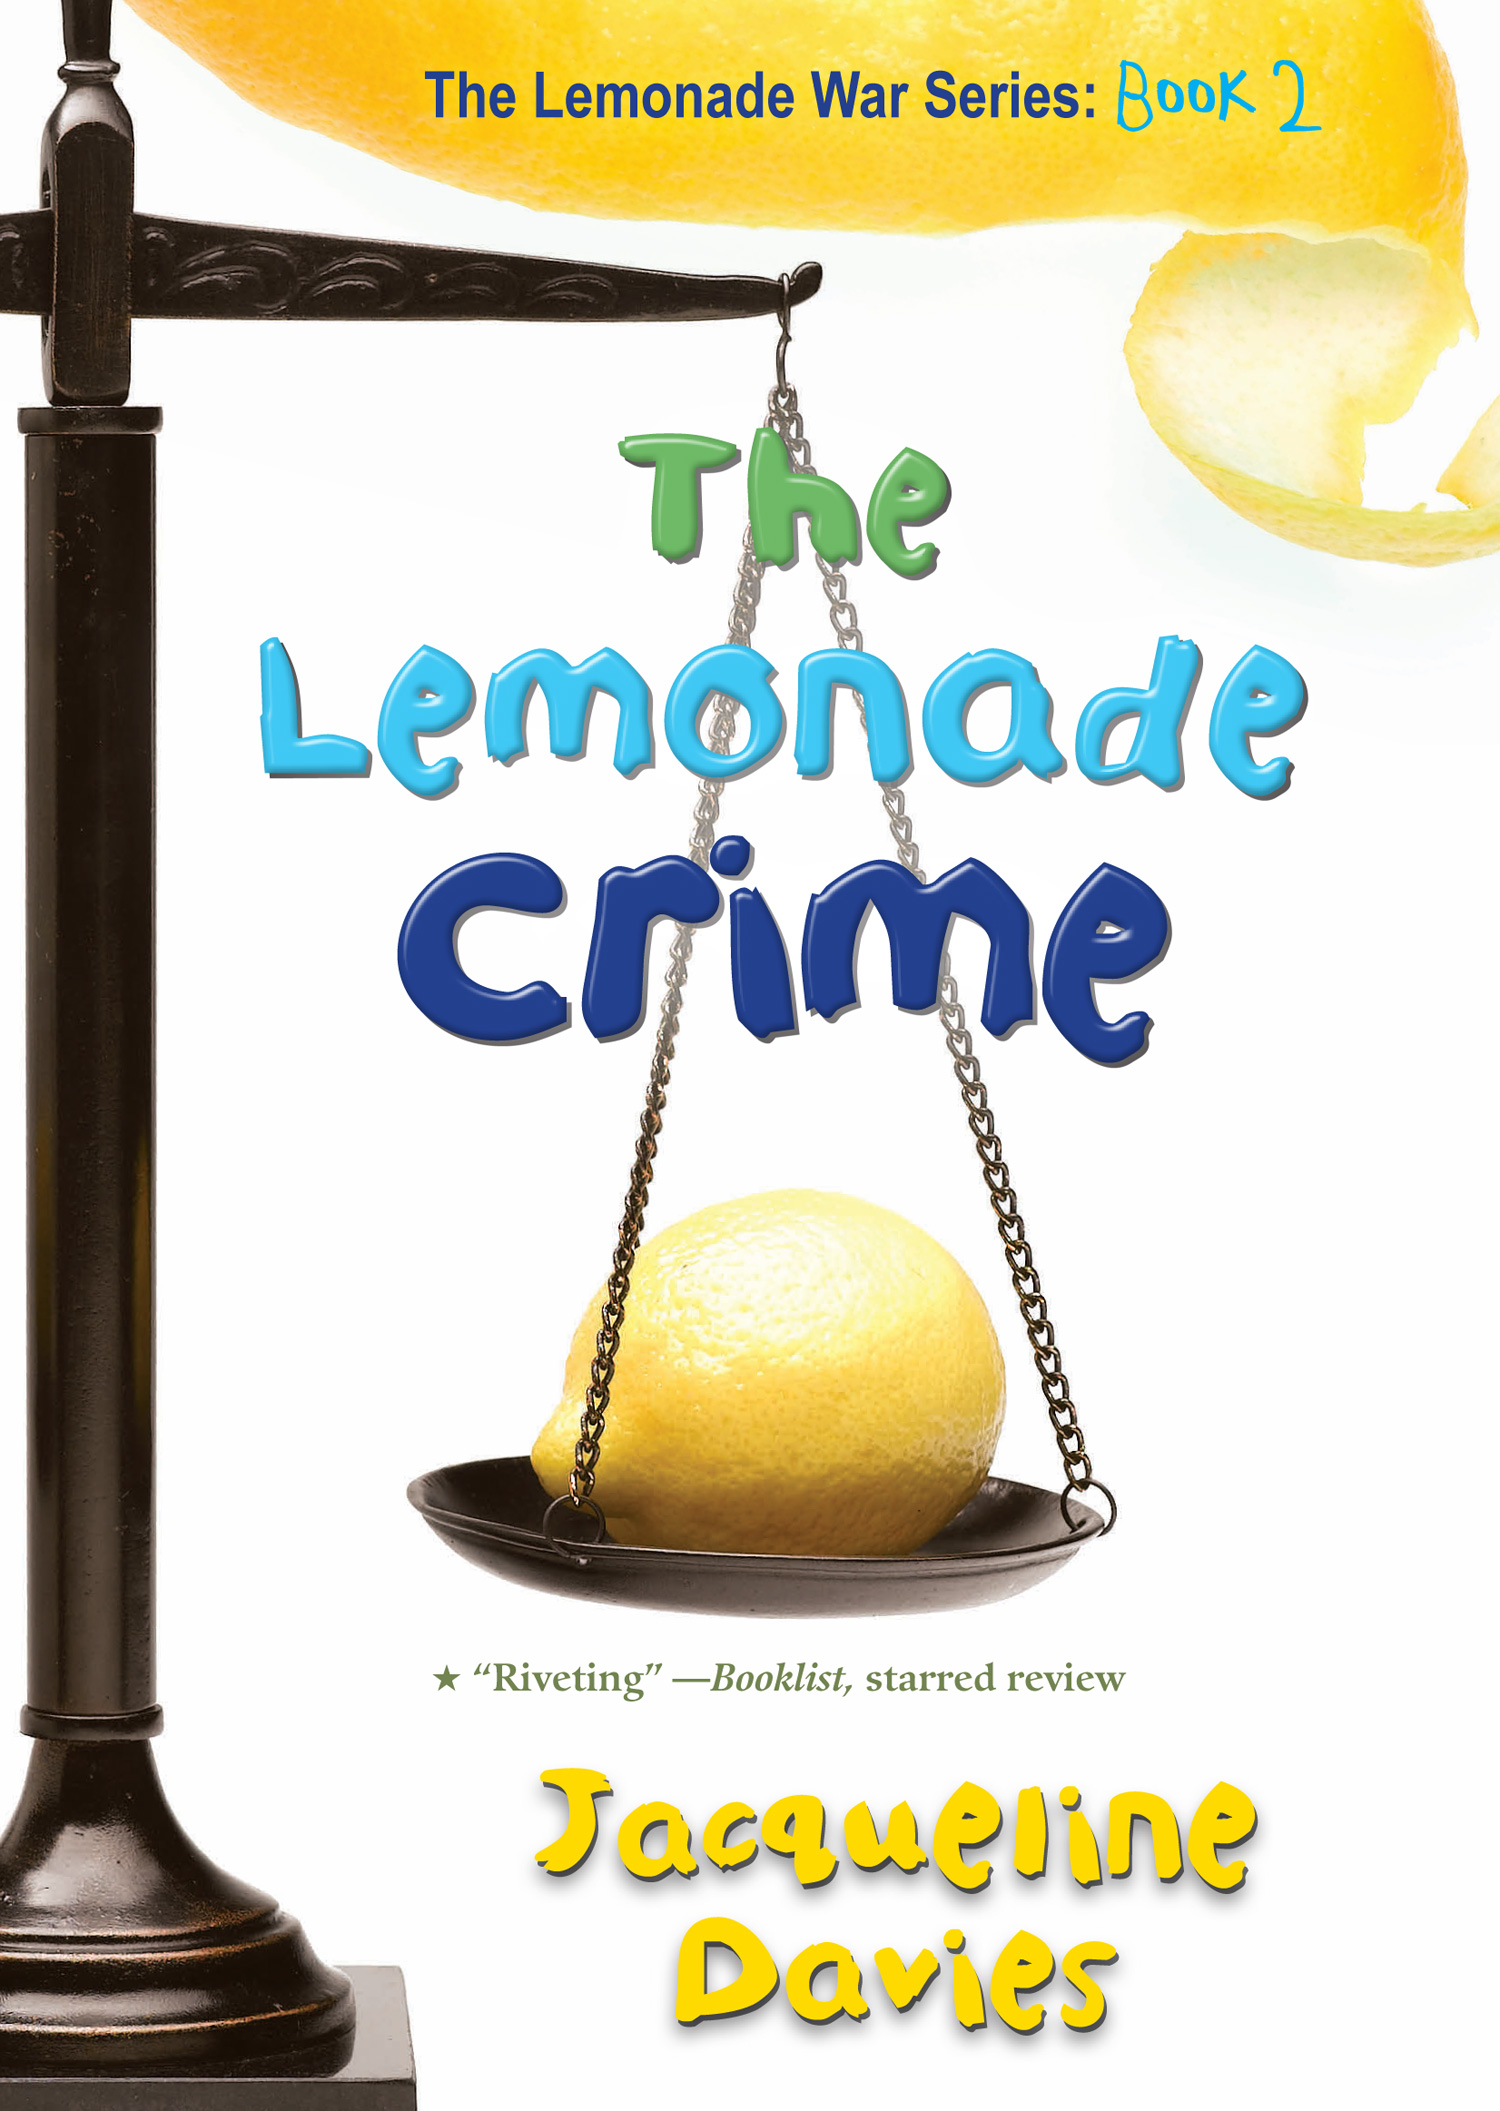 The Lemonade Crime-9780547722375